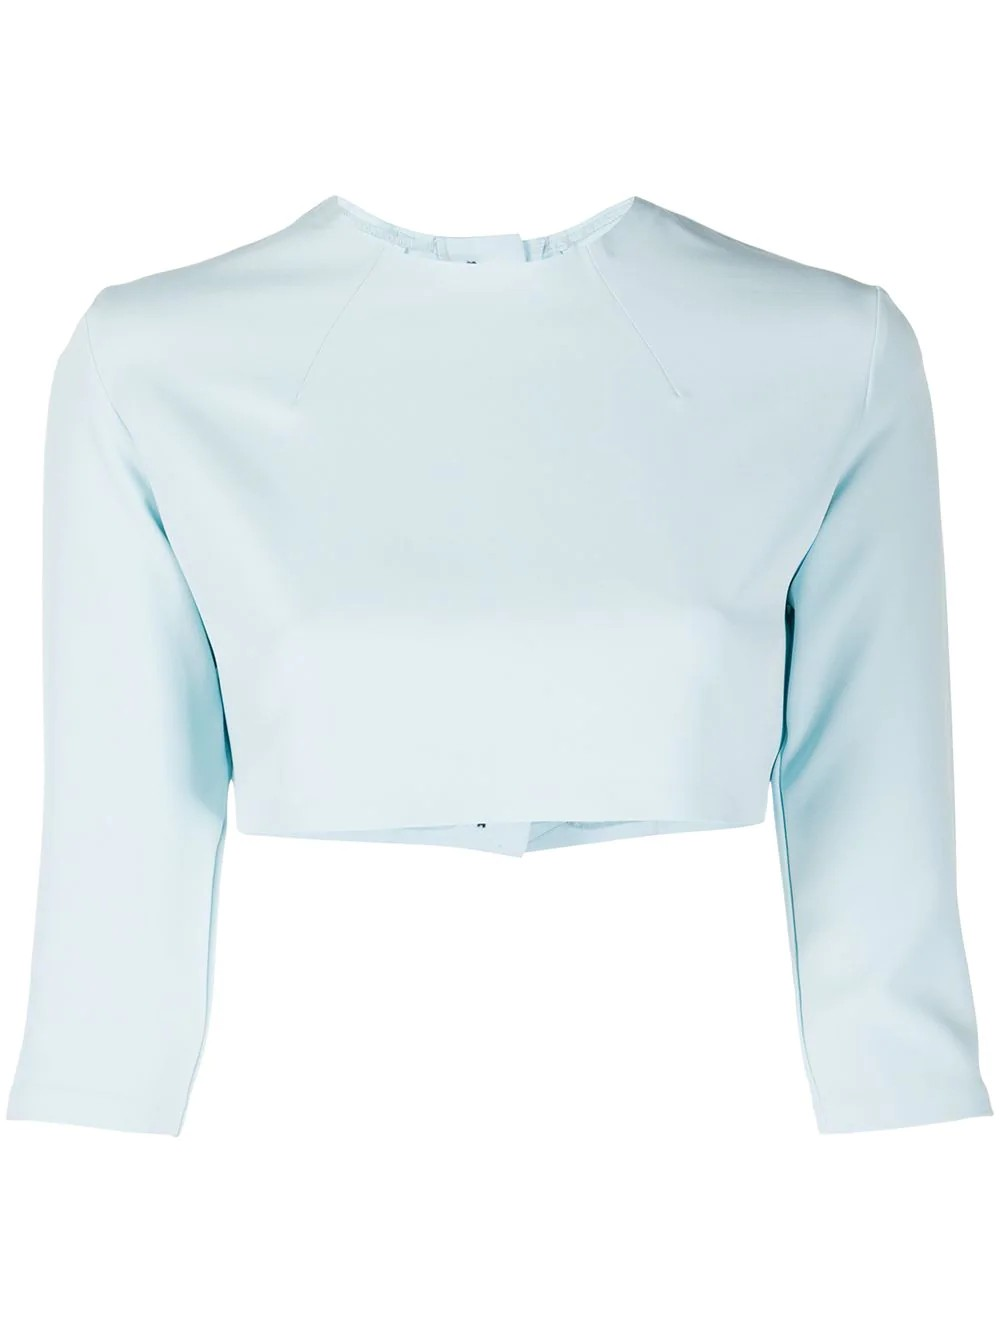 CROP TOP WITH BACK BUTTON CLOSURE